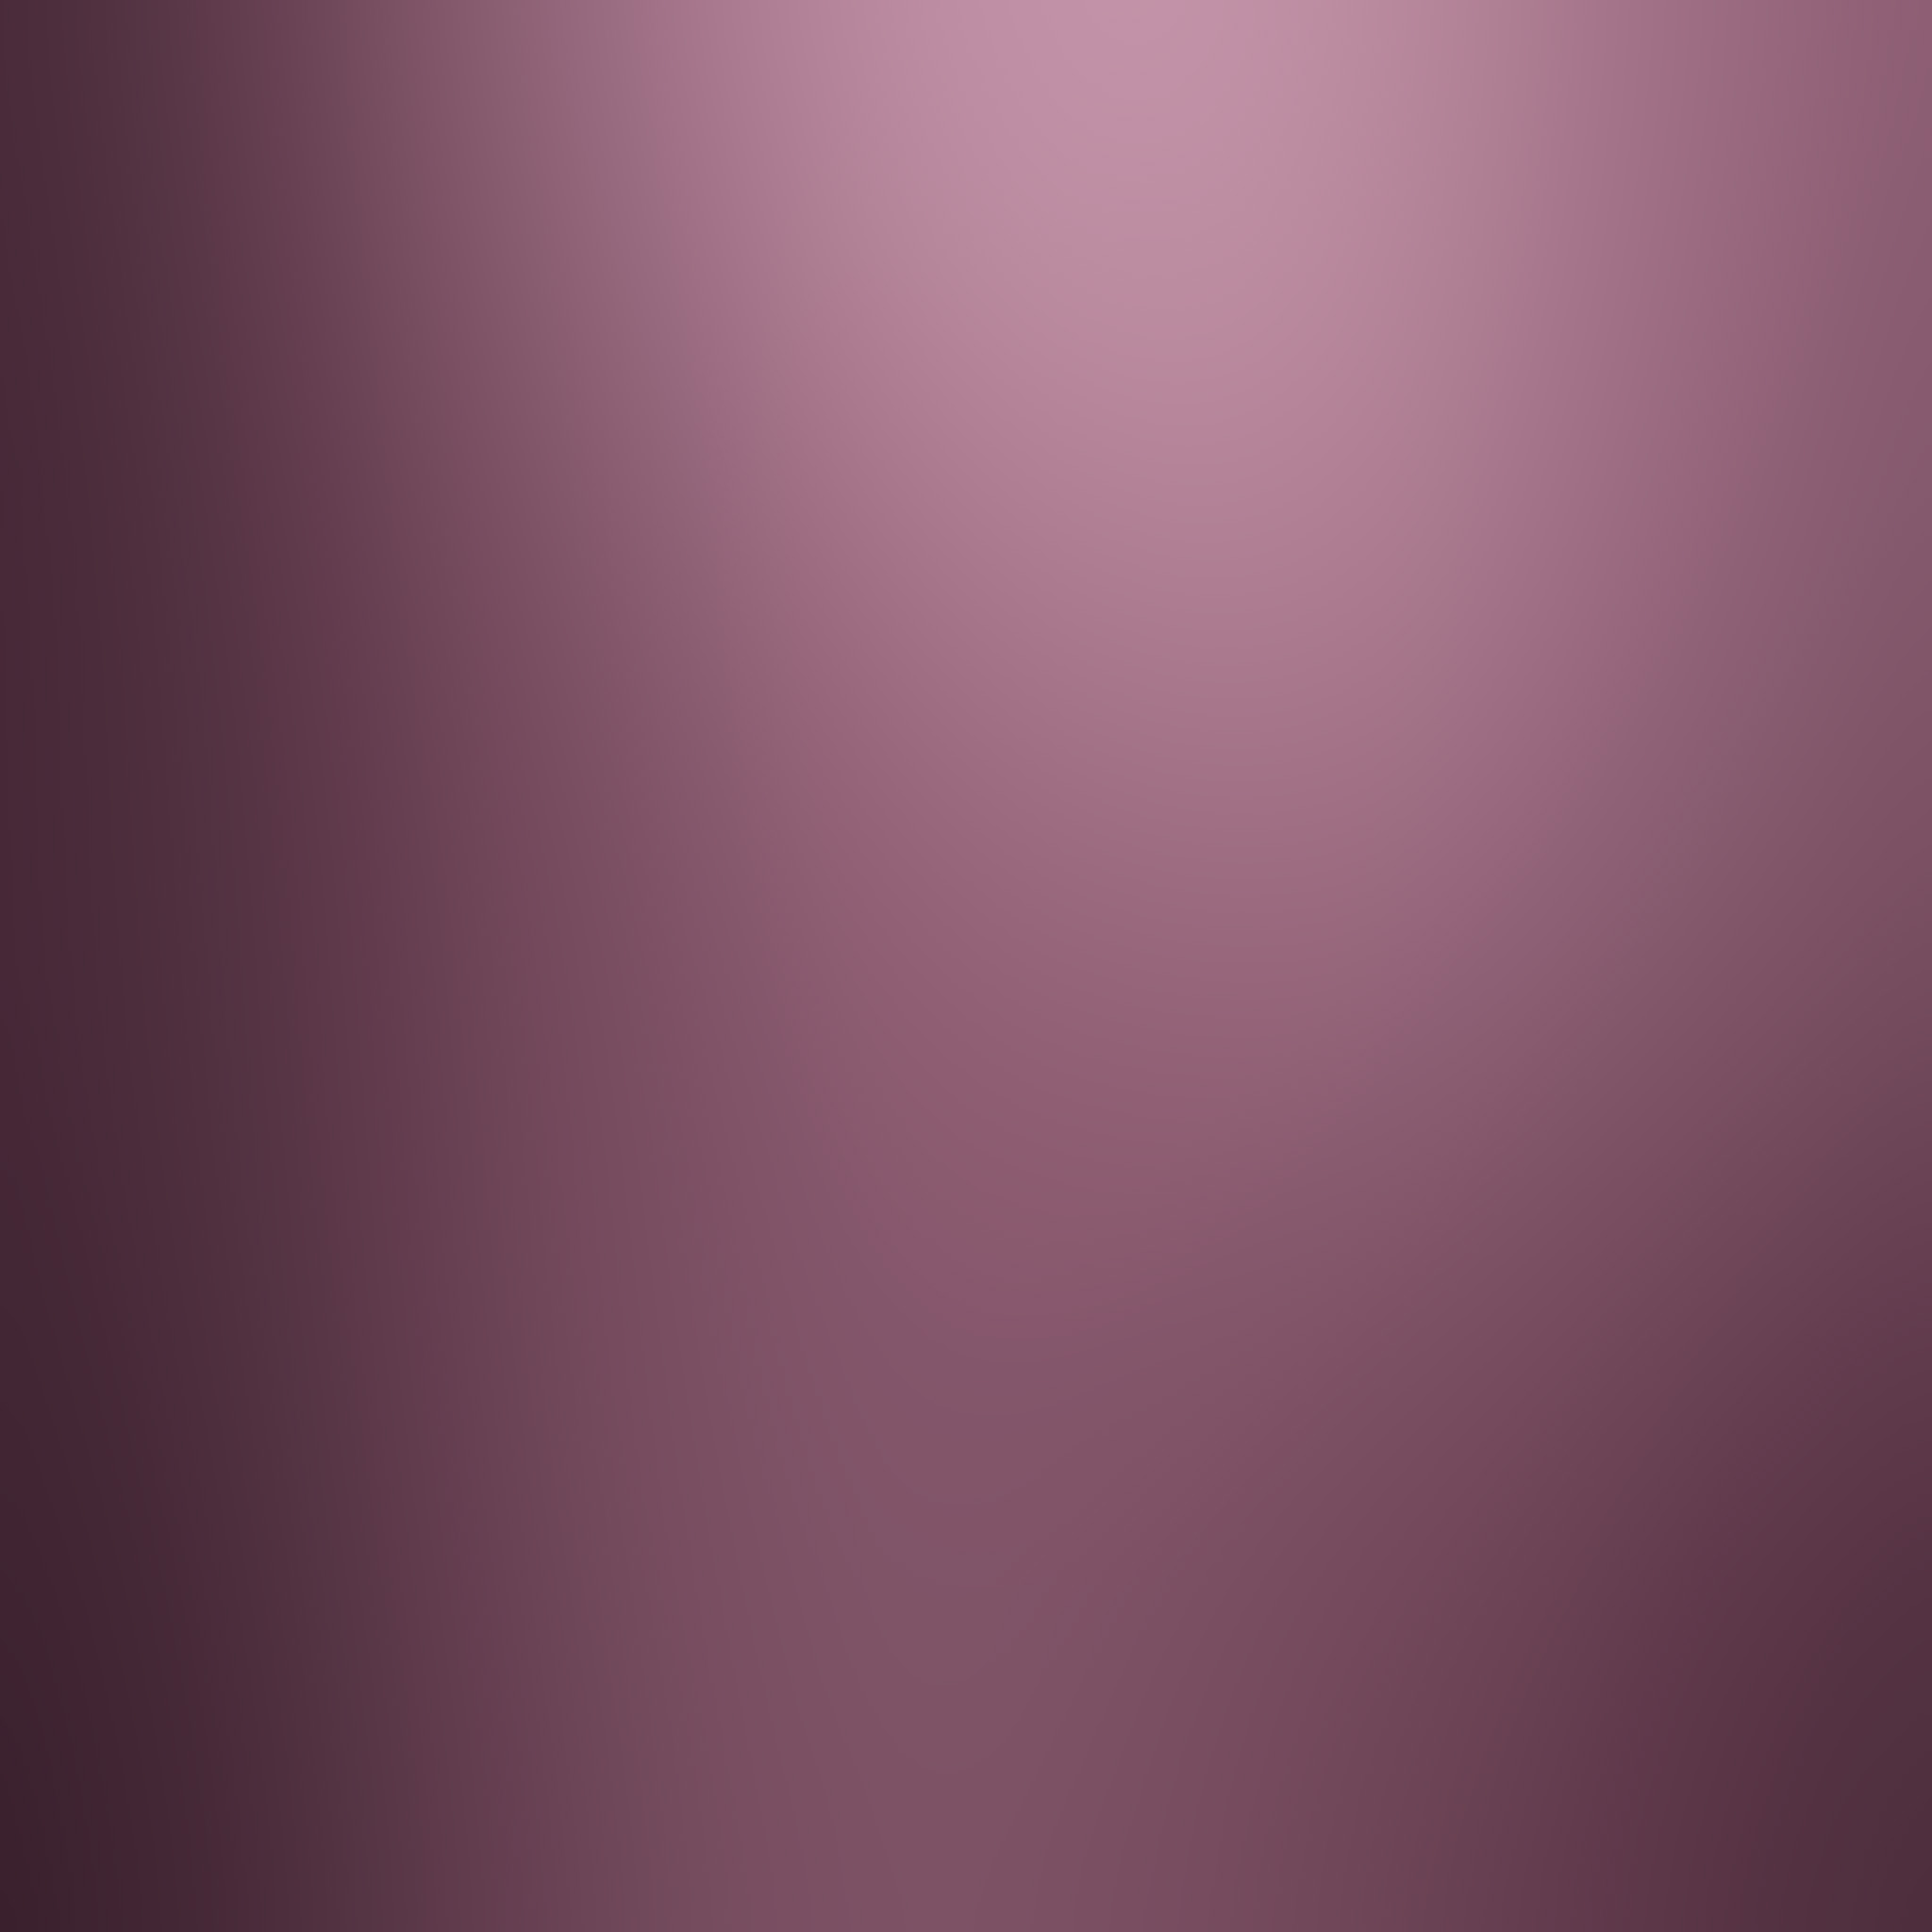 Freeios7 Sf87 Purple Violet Solid Gradation Blur